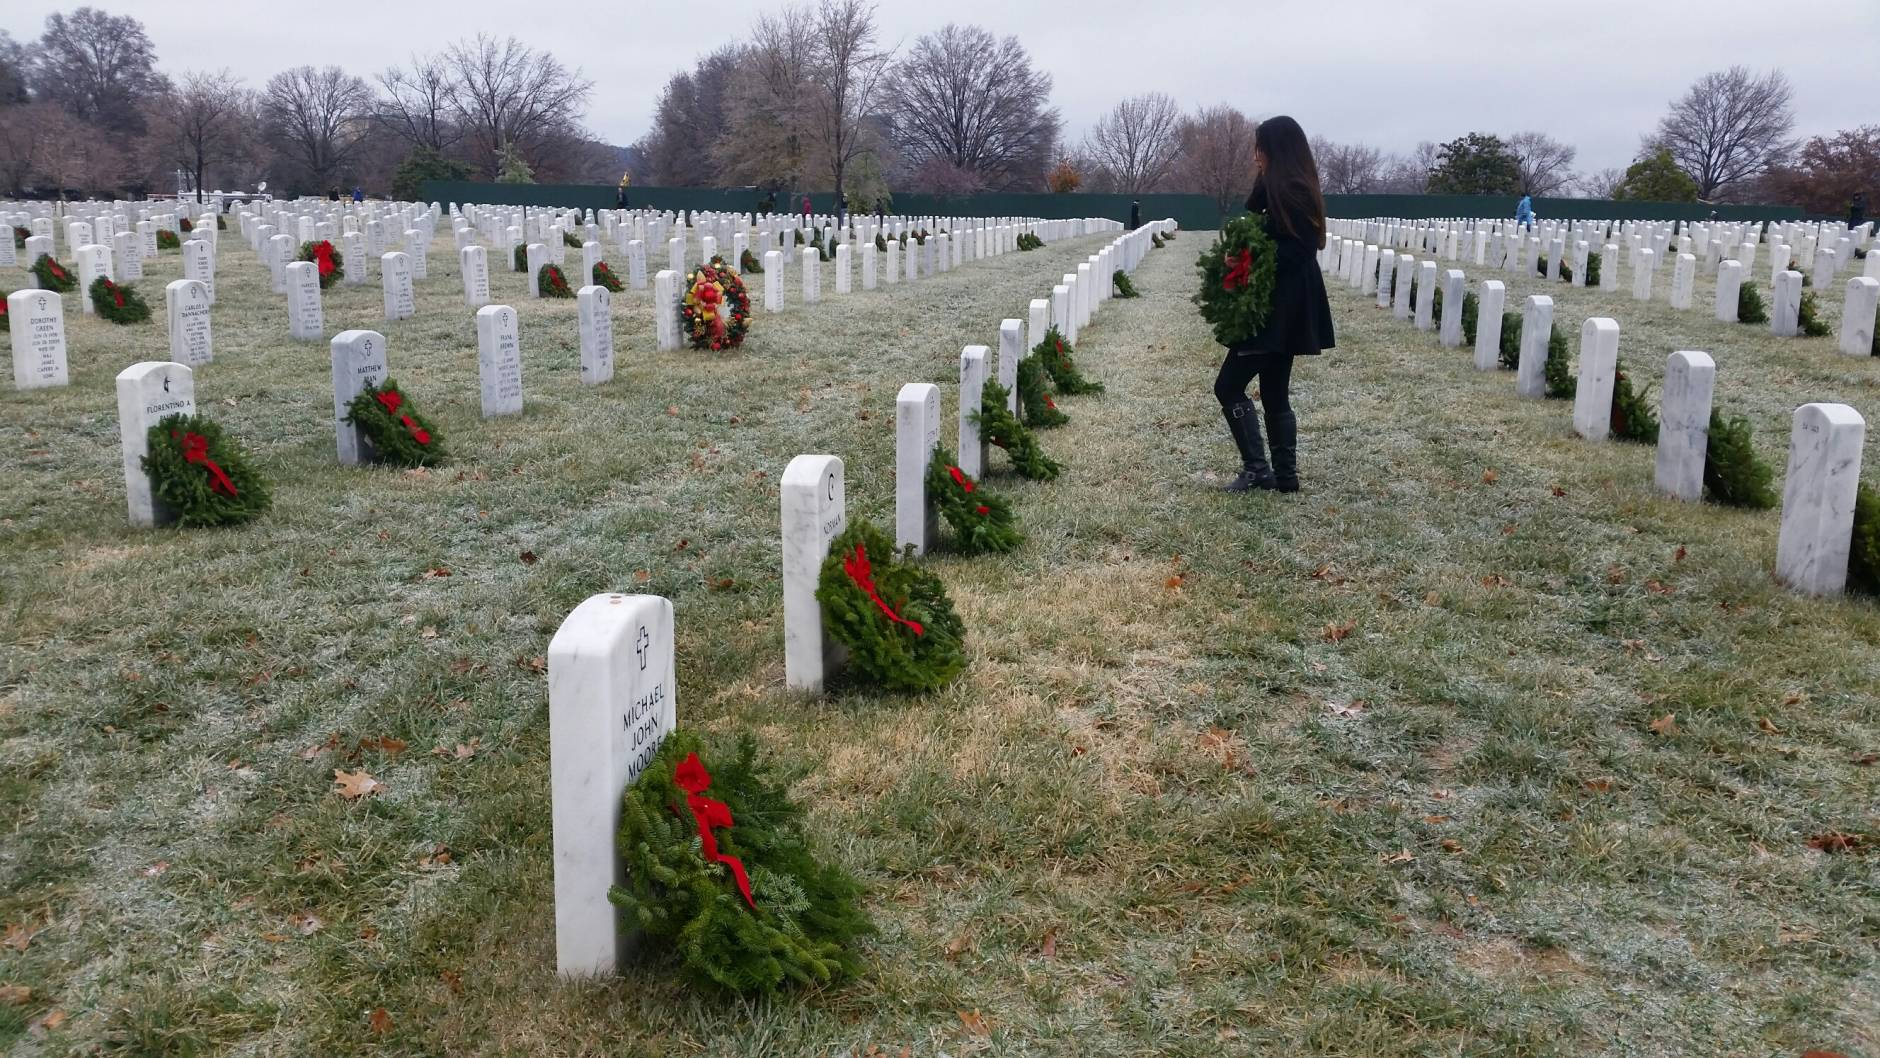 A woman stands in Arlington Cemetery, where the 25th annual Wreaths Across America ceremony to honor veterans took place on an icy morning Dec. 17, 2016. (WTOP Kathy Stewart)